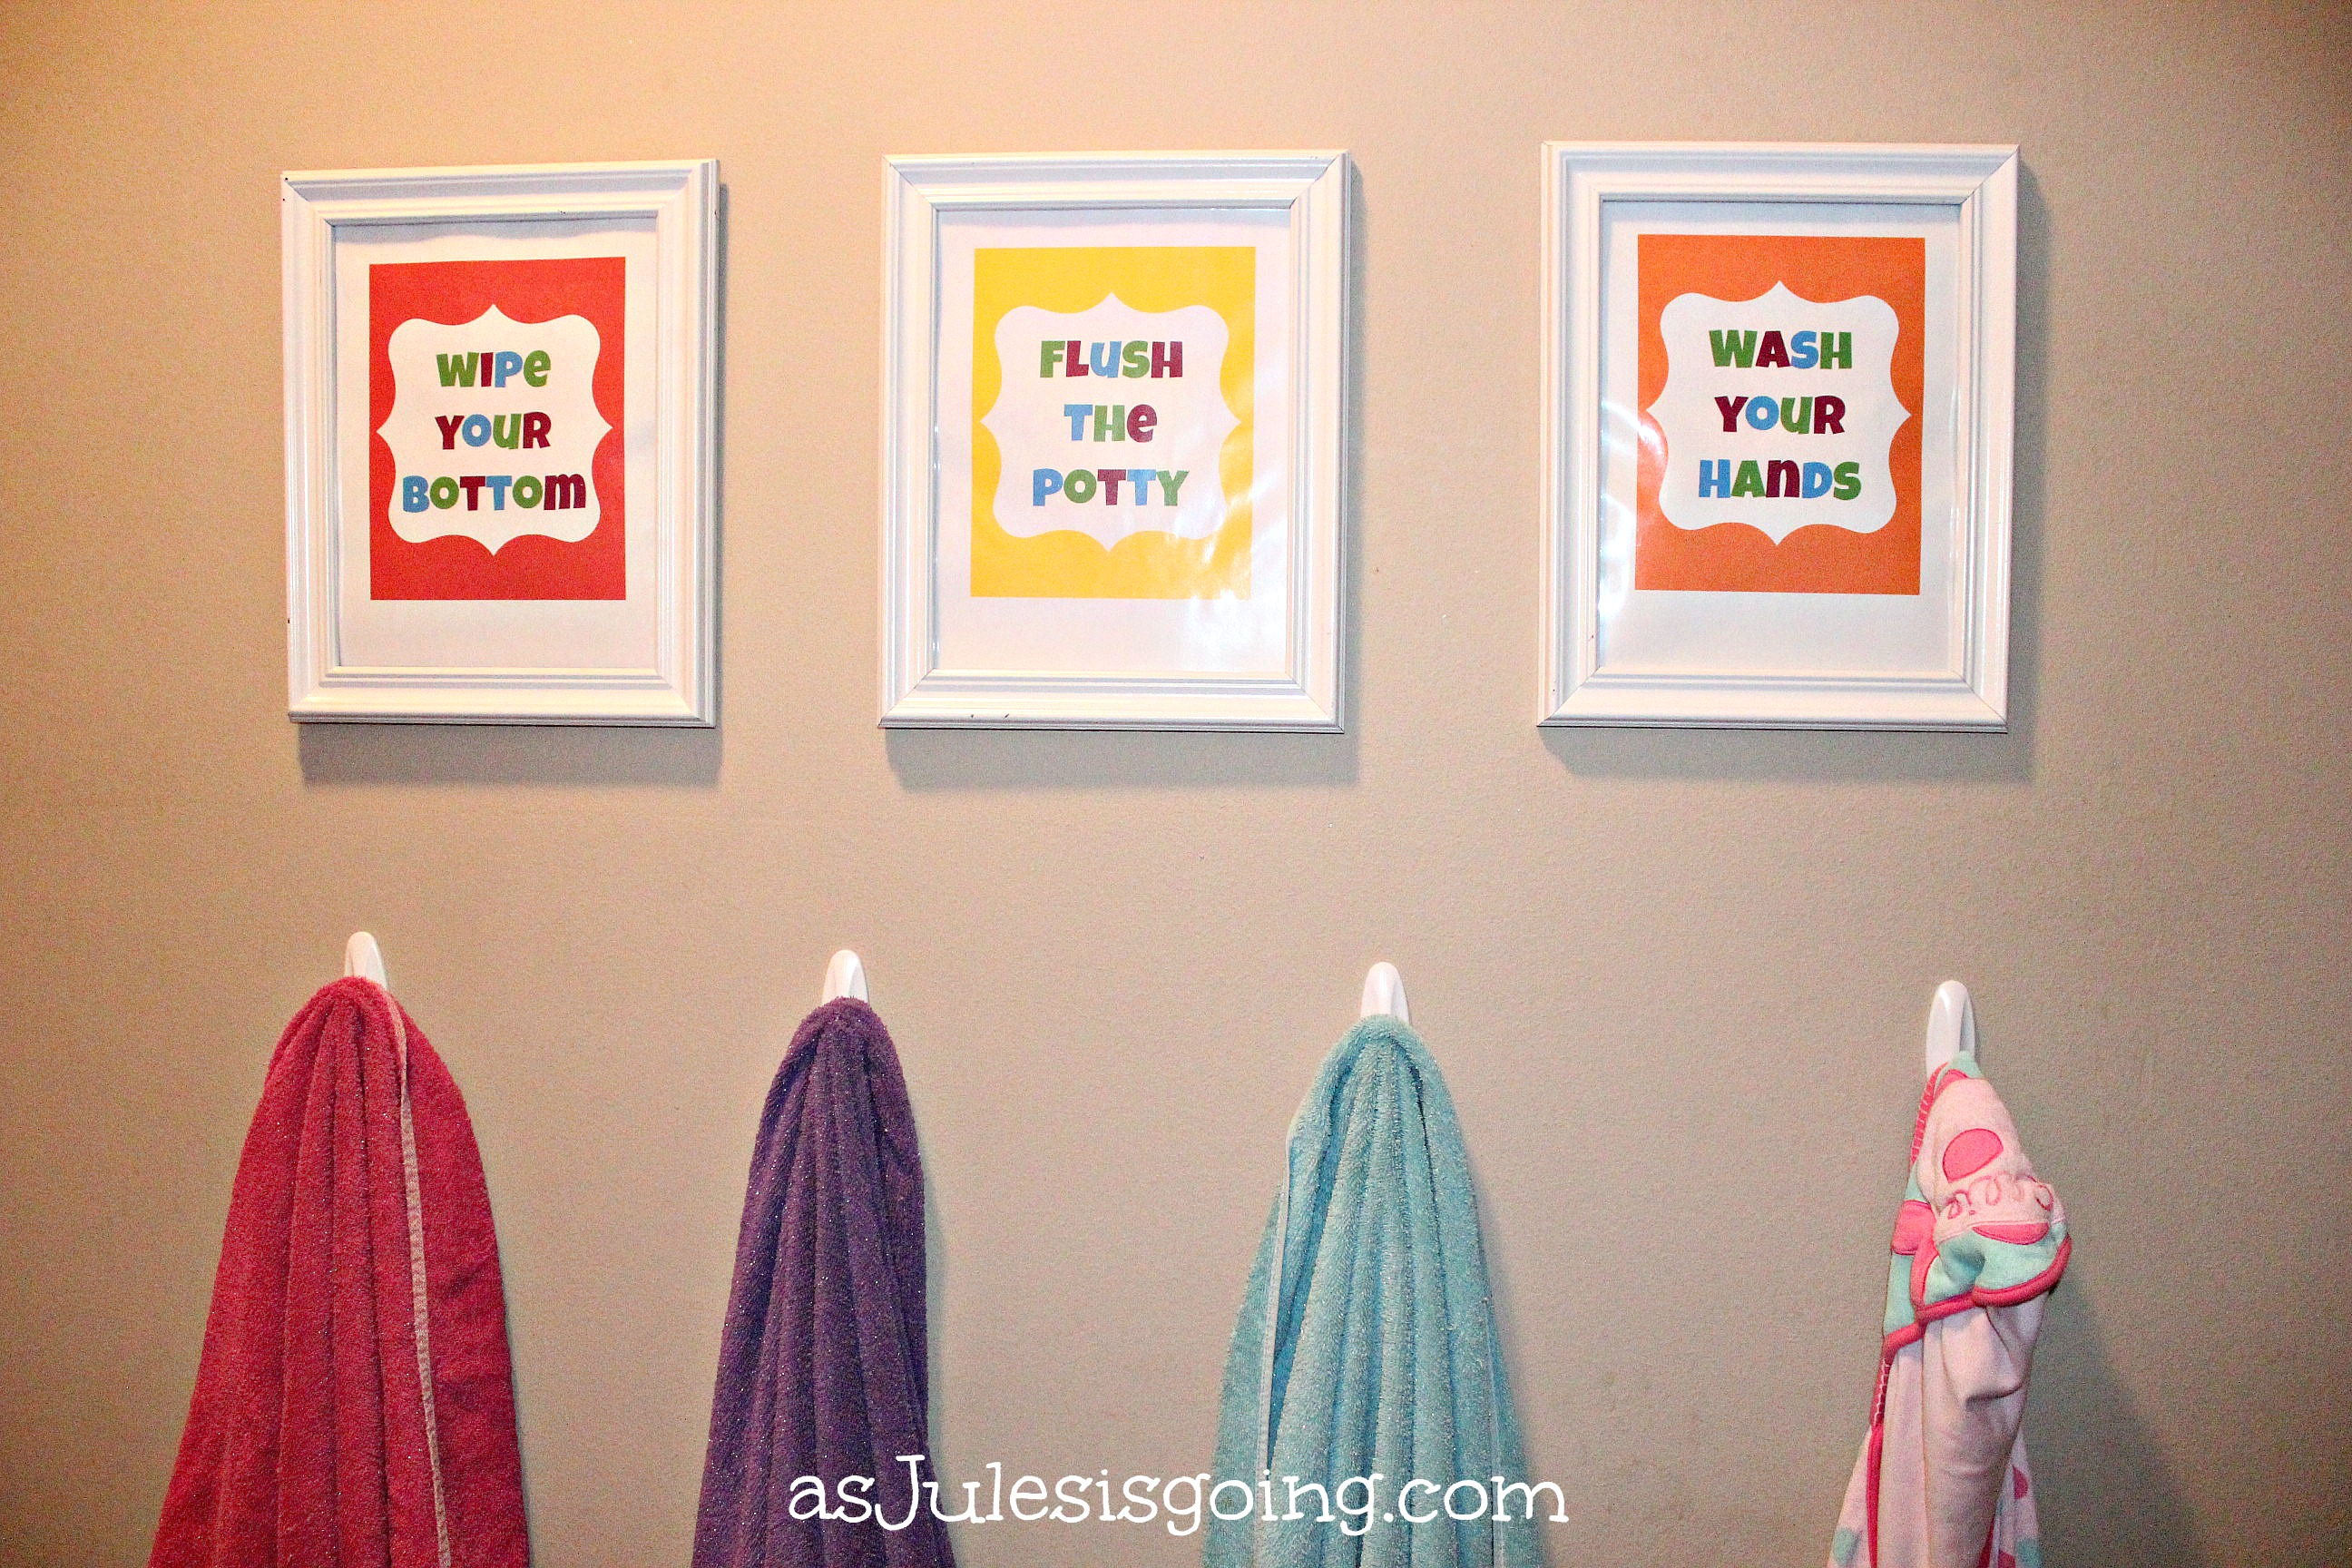 FREE Printables! Kidsu0027 Bathroom ArtSigns Wipe Your Bottom, Flush The Potty,  Wash Your Hands